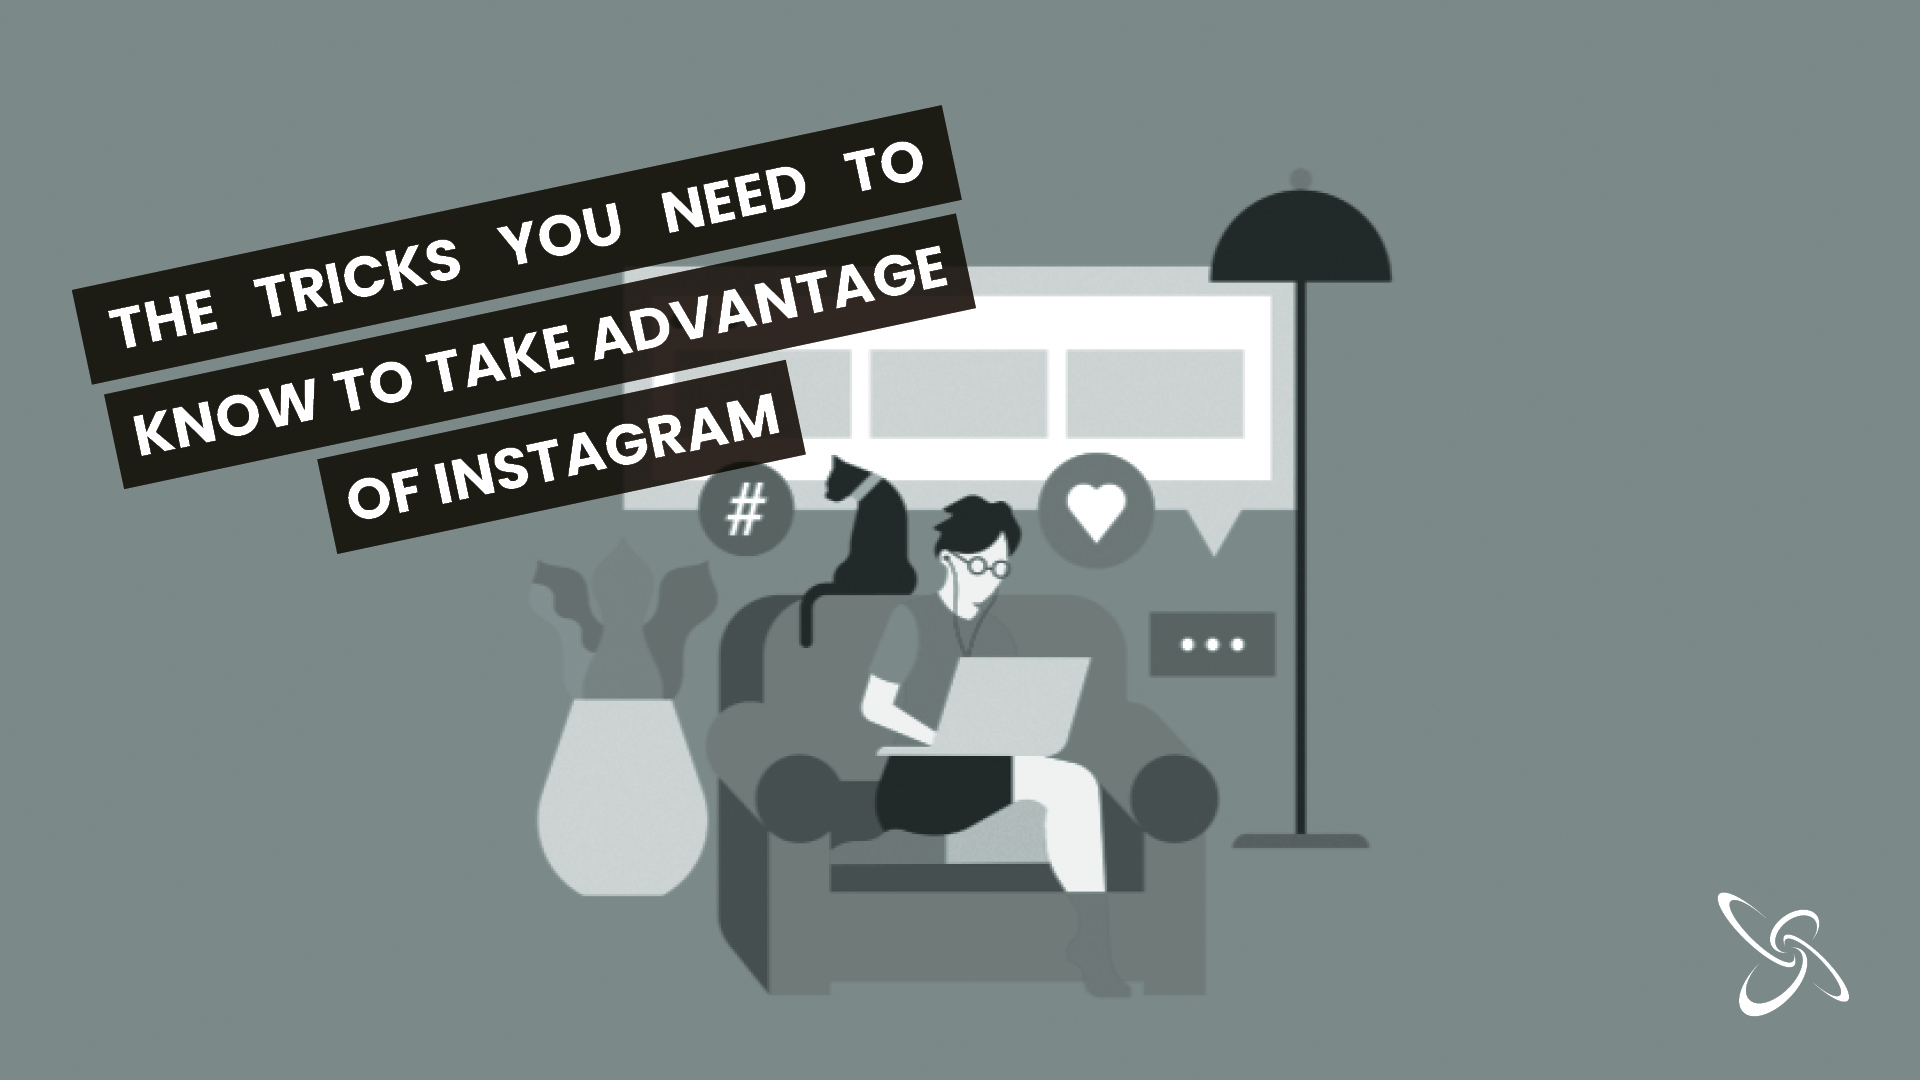 The tricks you need to know to take advantage of Instagram